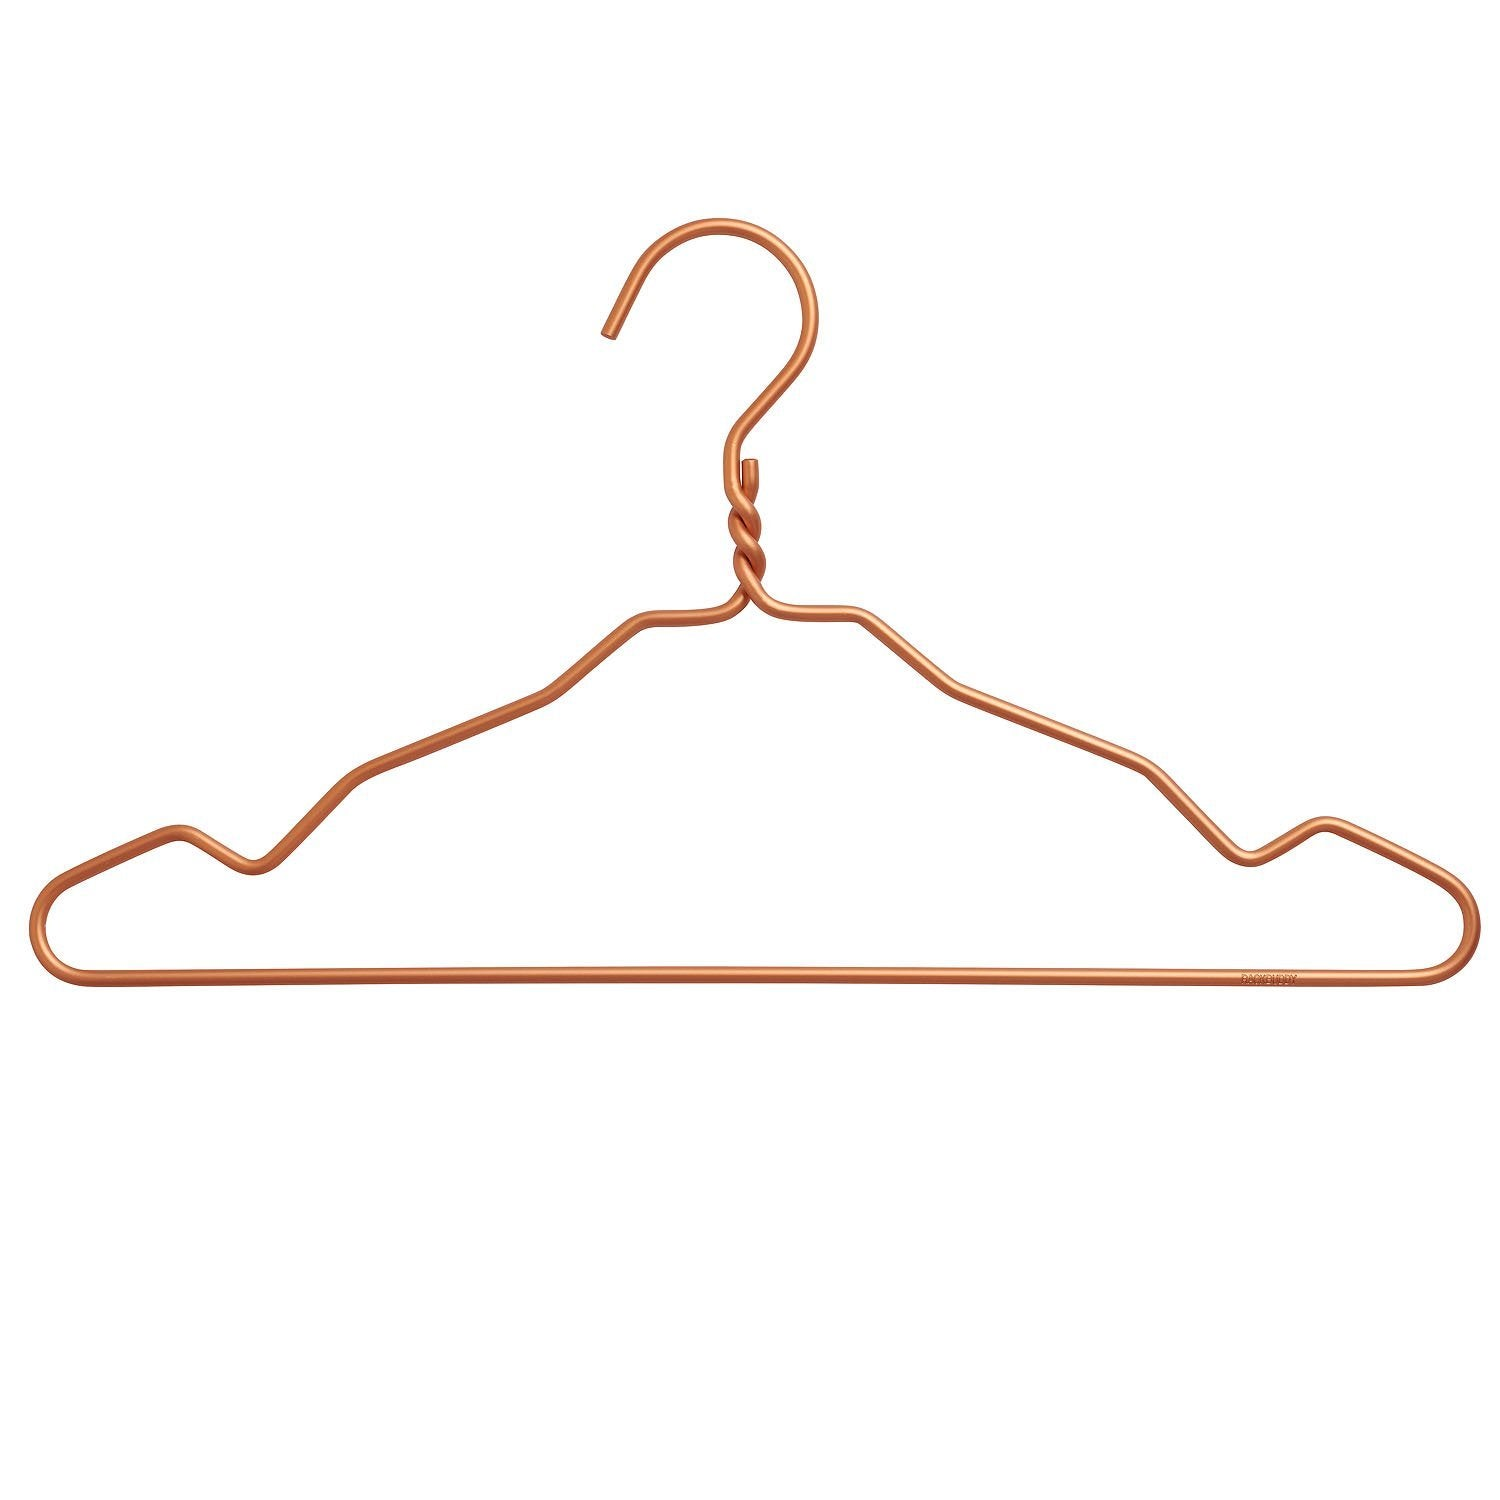 Clothes hangers in copper